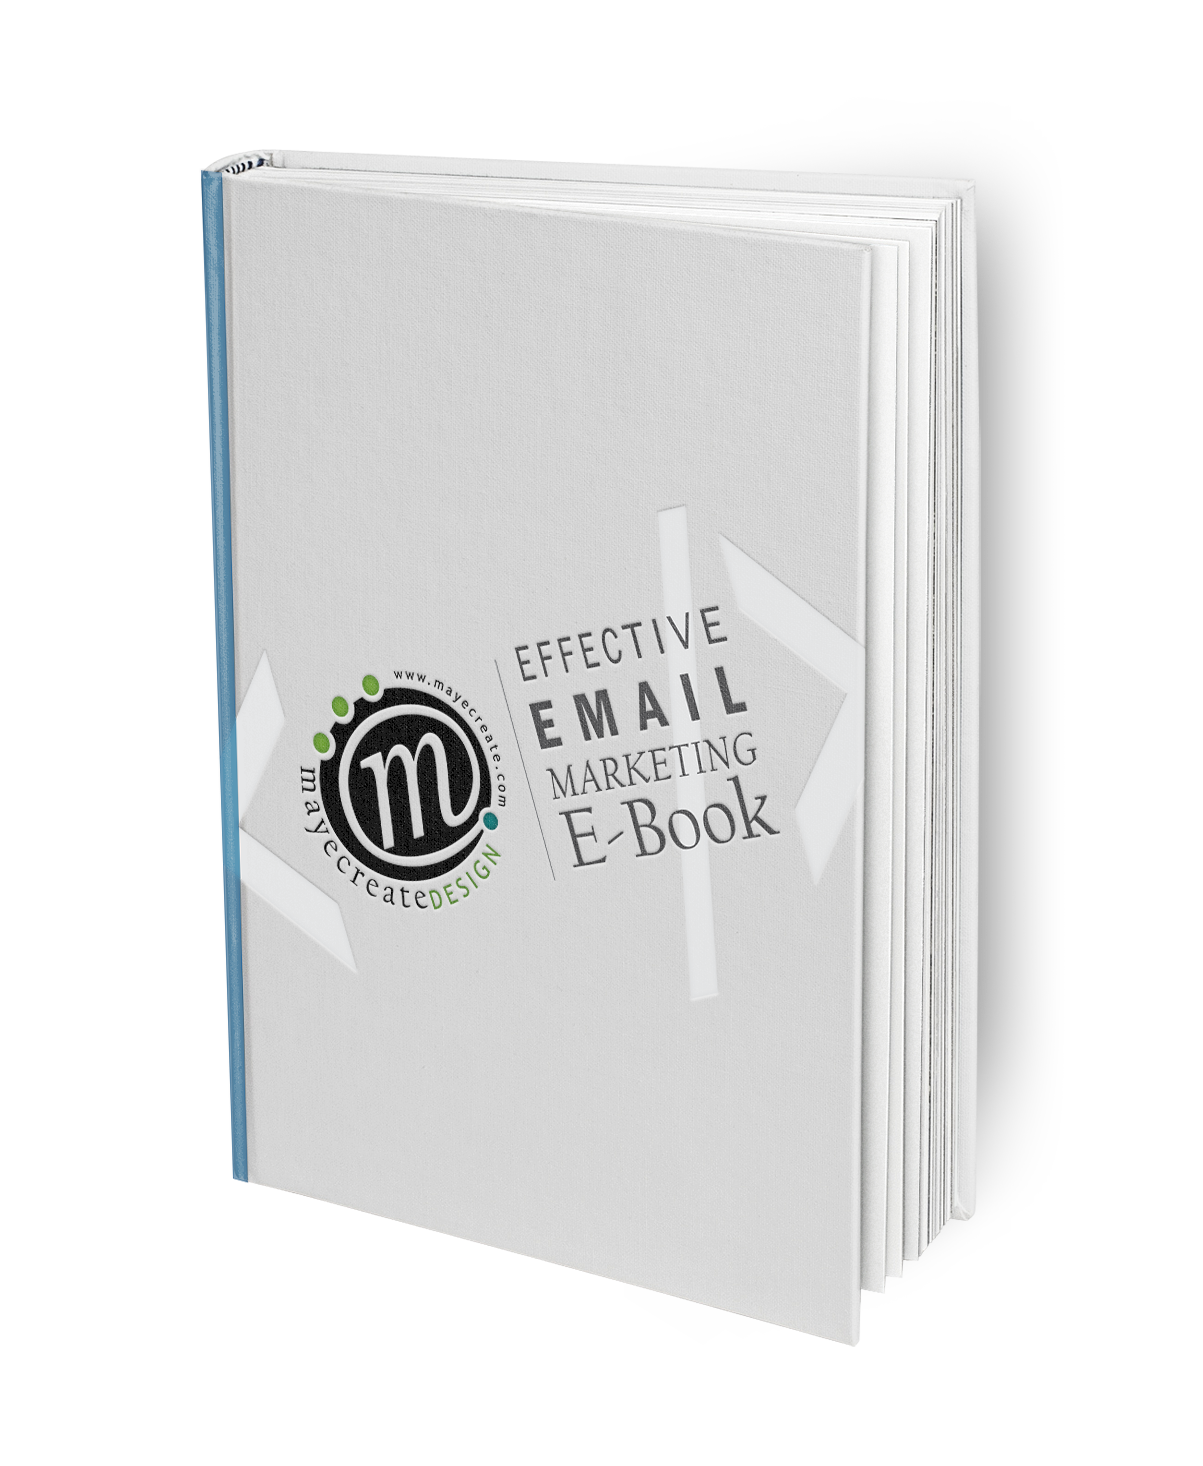 Effective Email Marketing E-Book